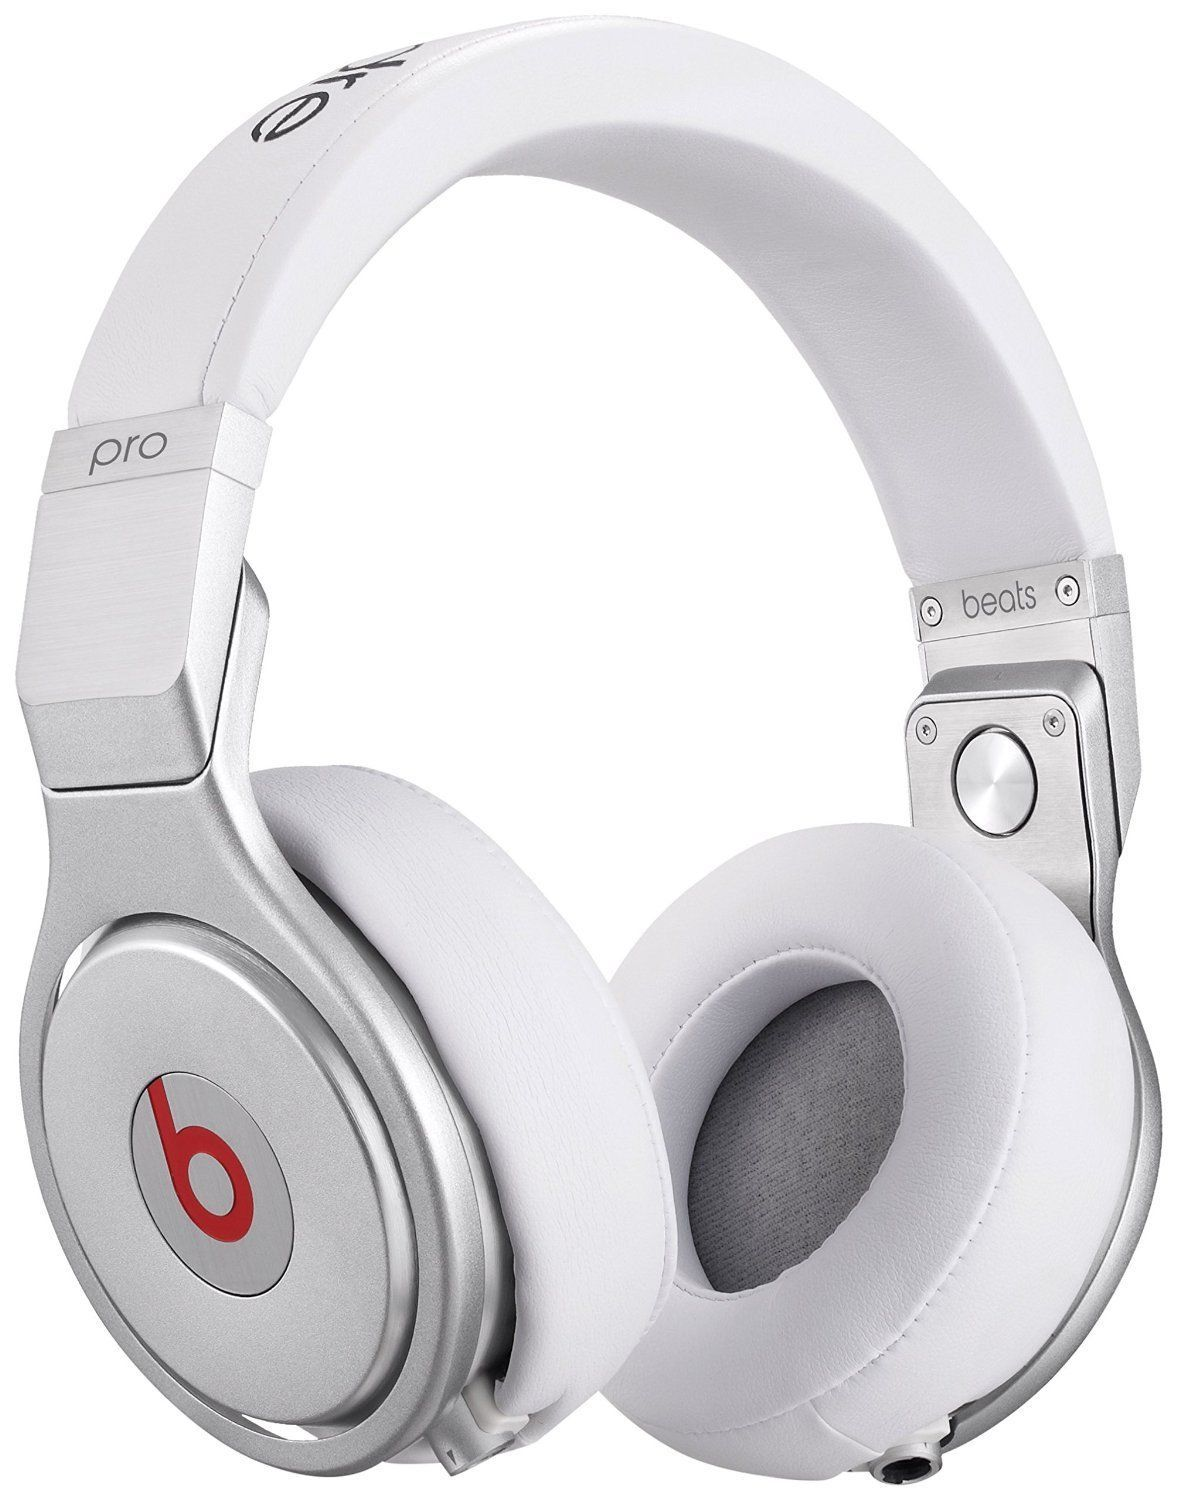 Beats by Dr. Dre PRO Over Ear Headphones White (eBay Link